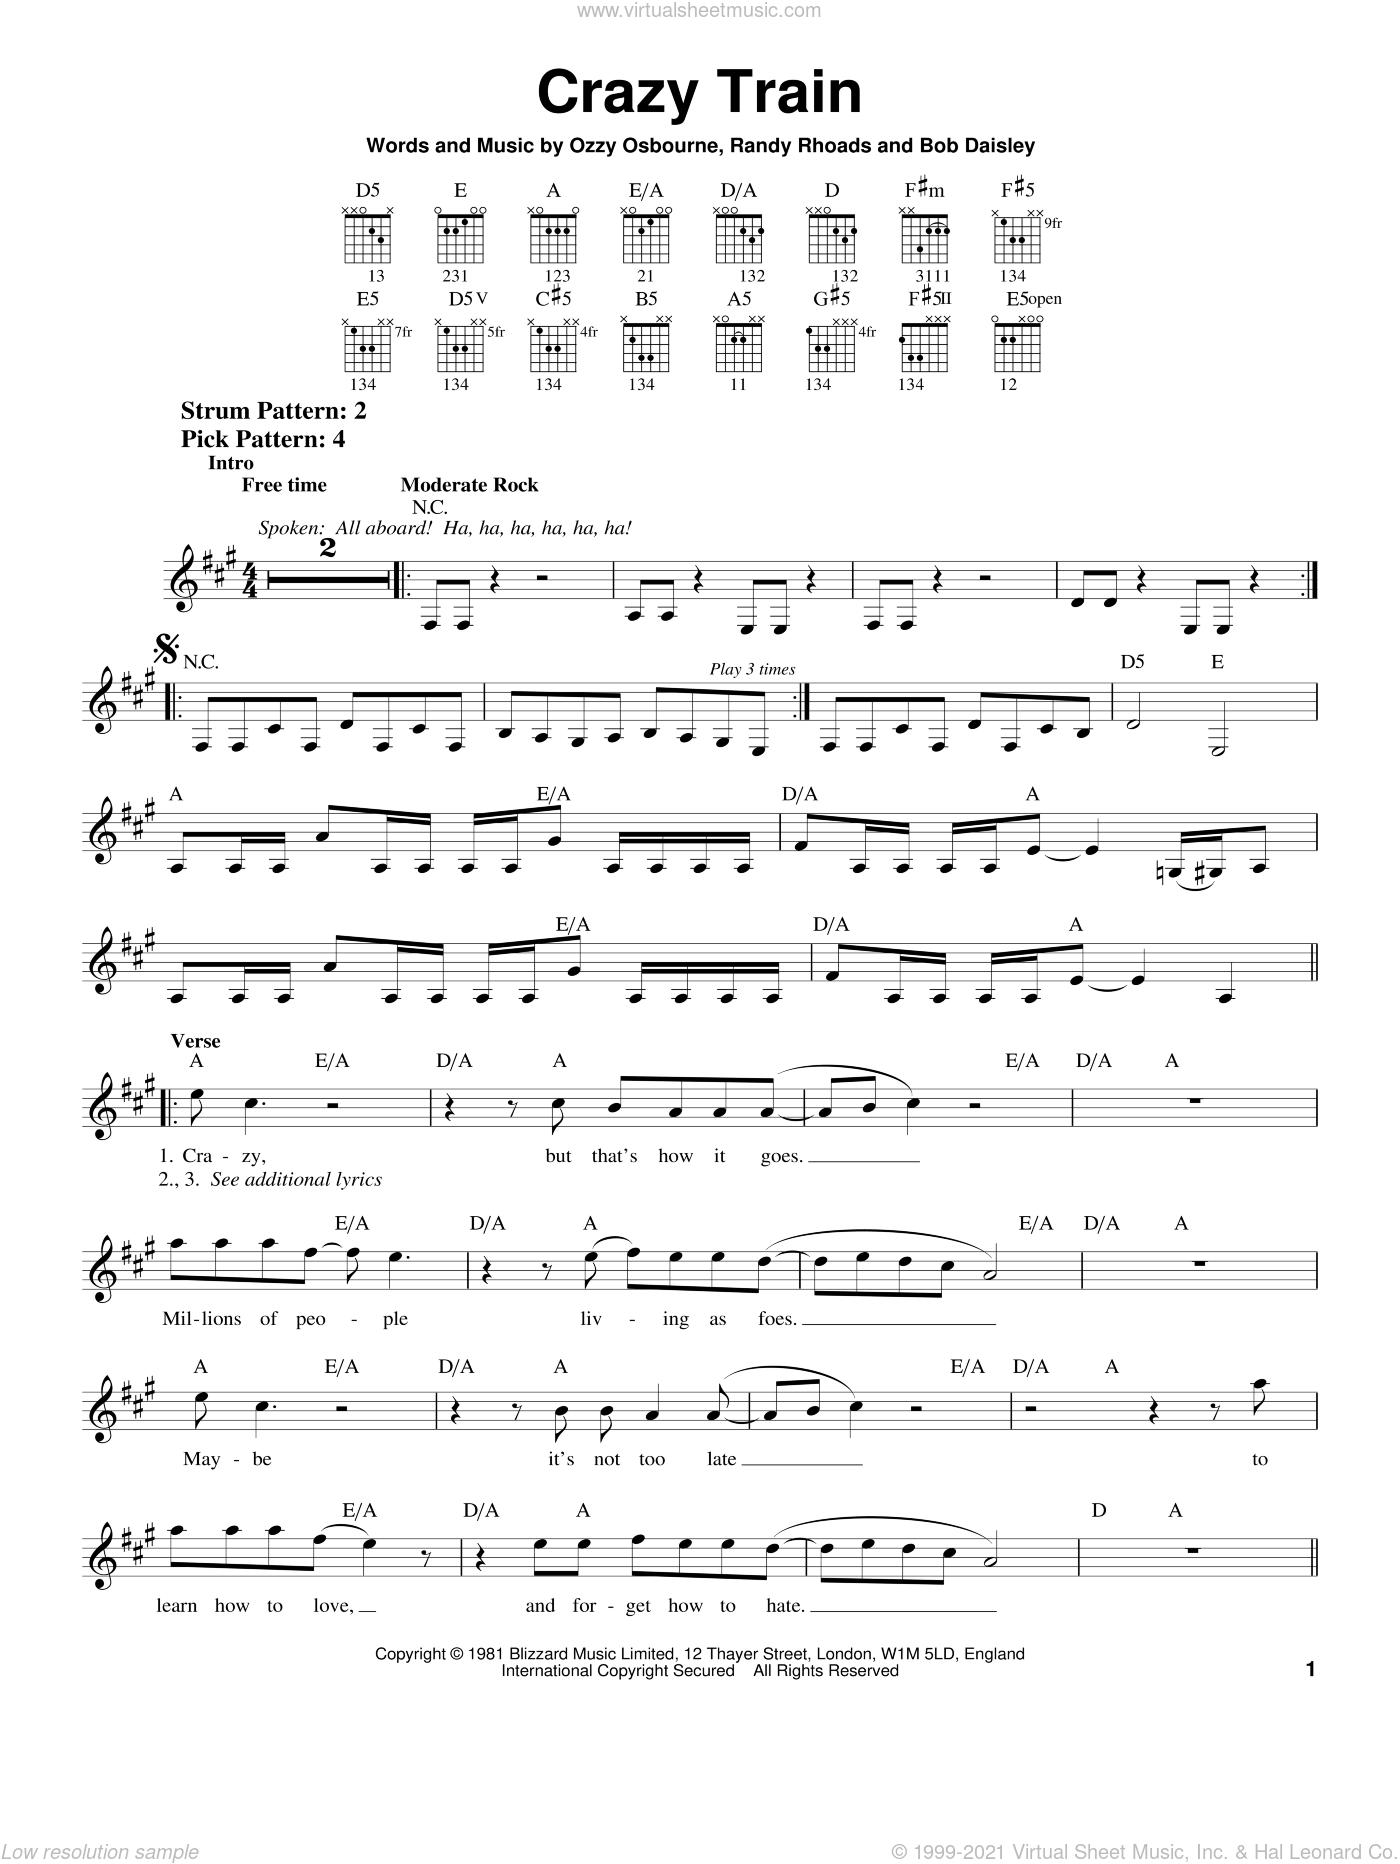 Crazy Train sheet music for guitar solo (chords) by Randy Rhoads